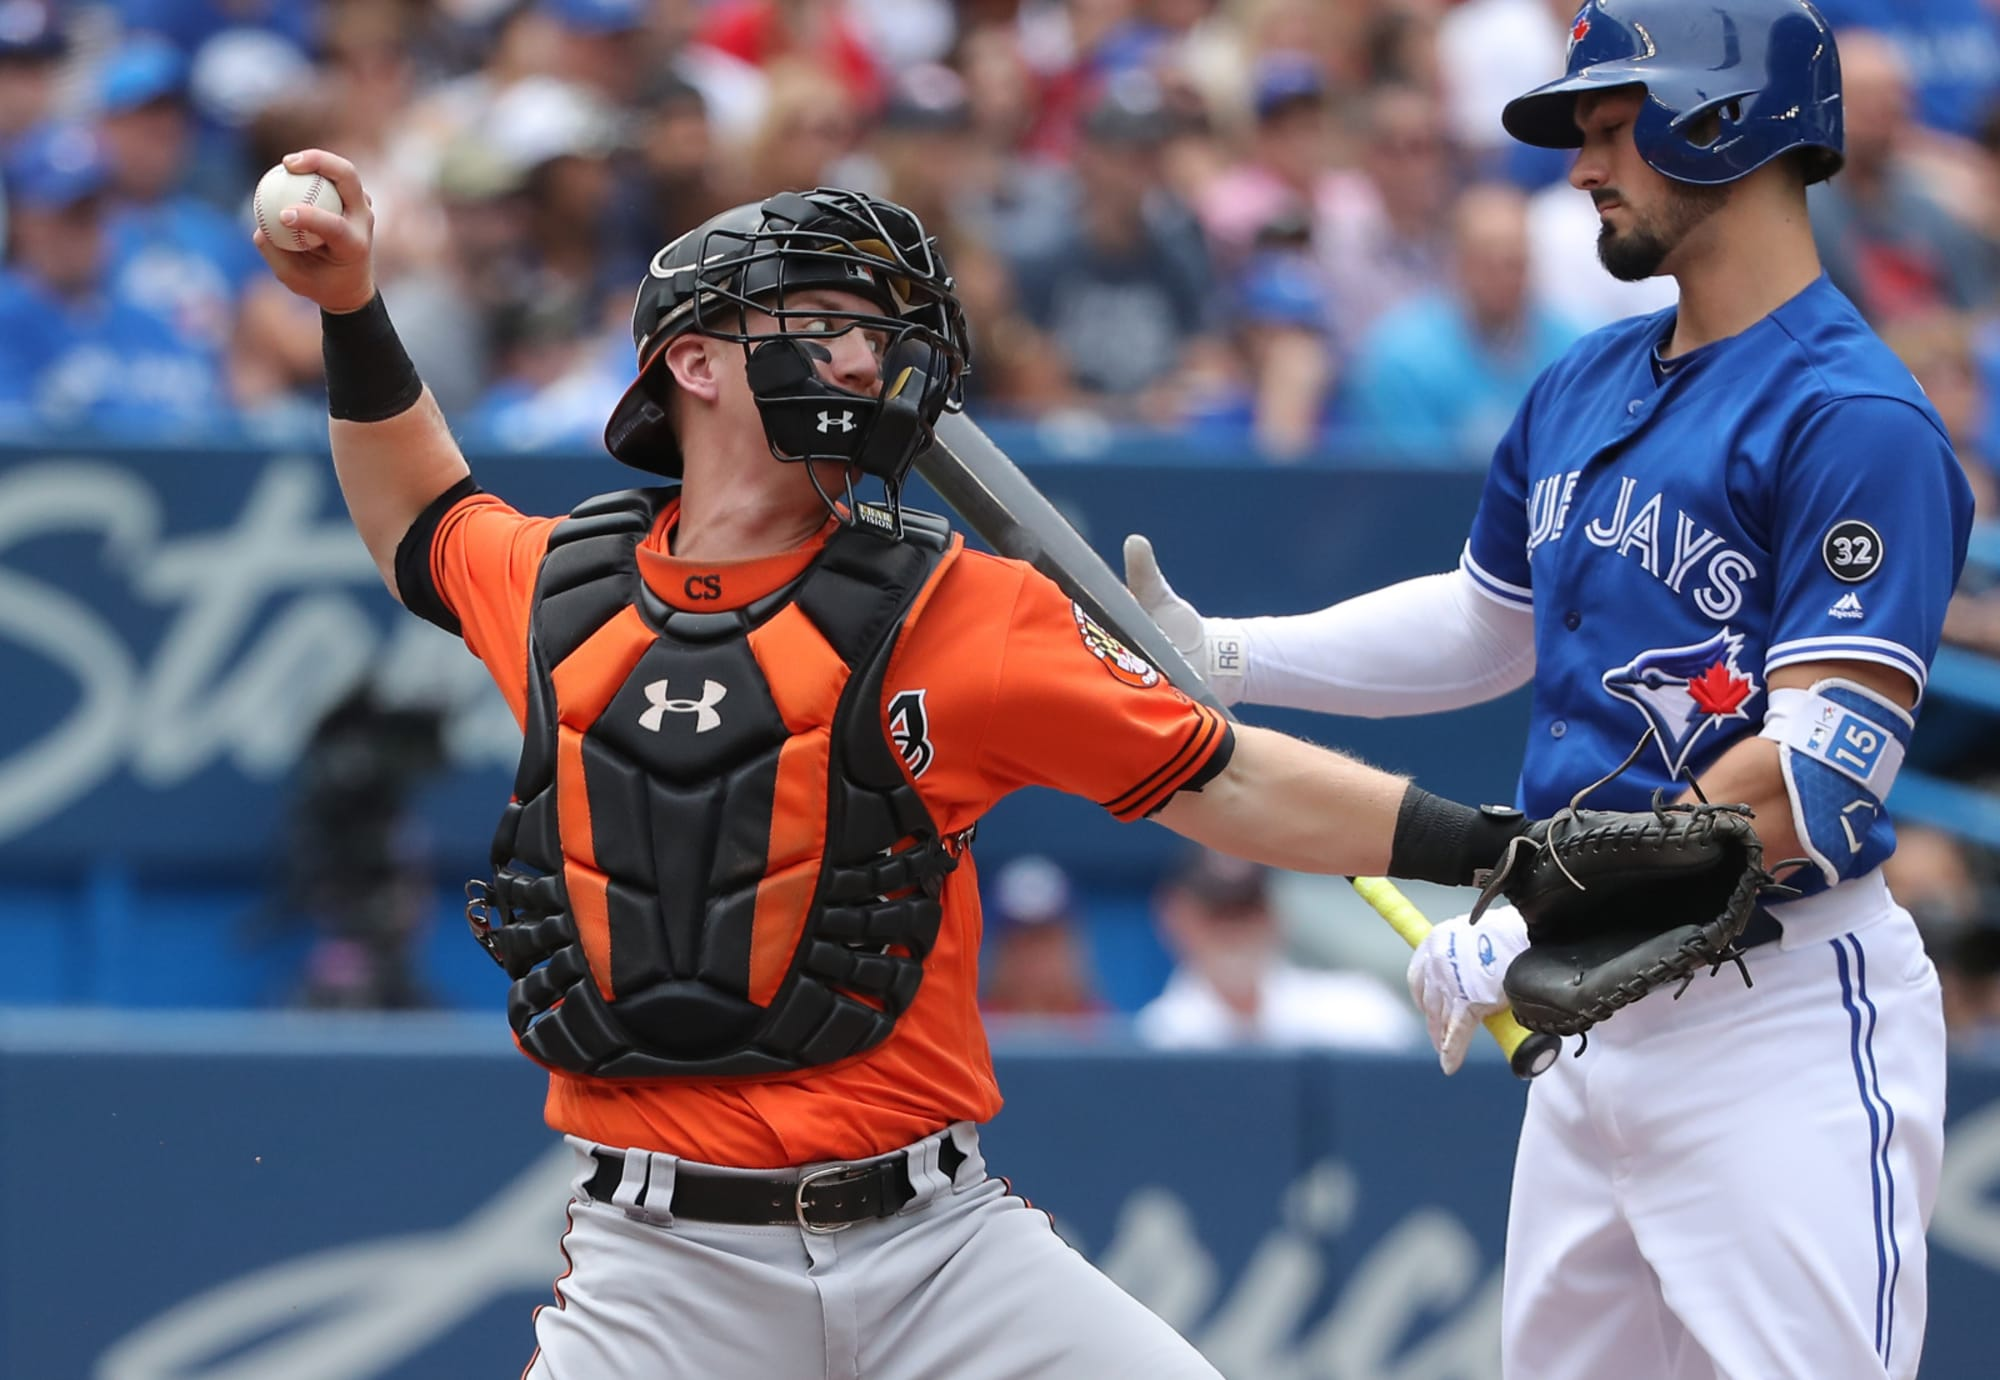 Baltimore Orioles: Chance Sisco To Begin Year In Norfolk